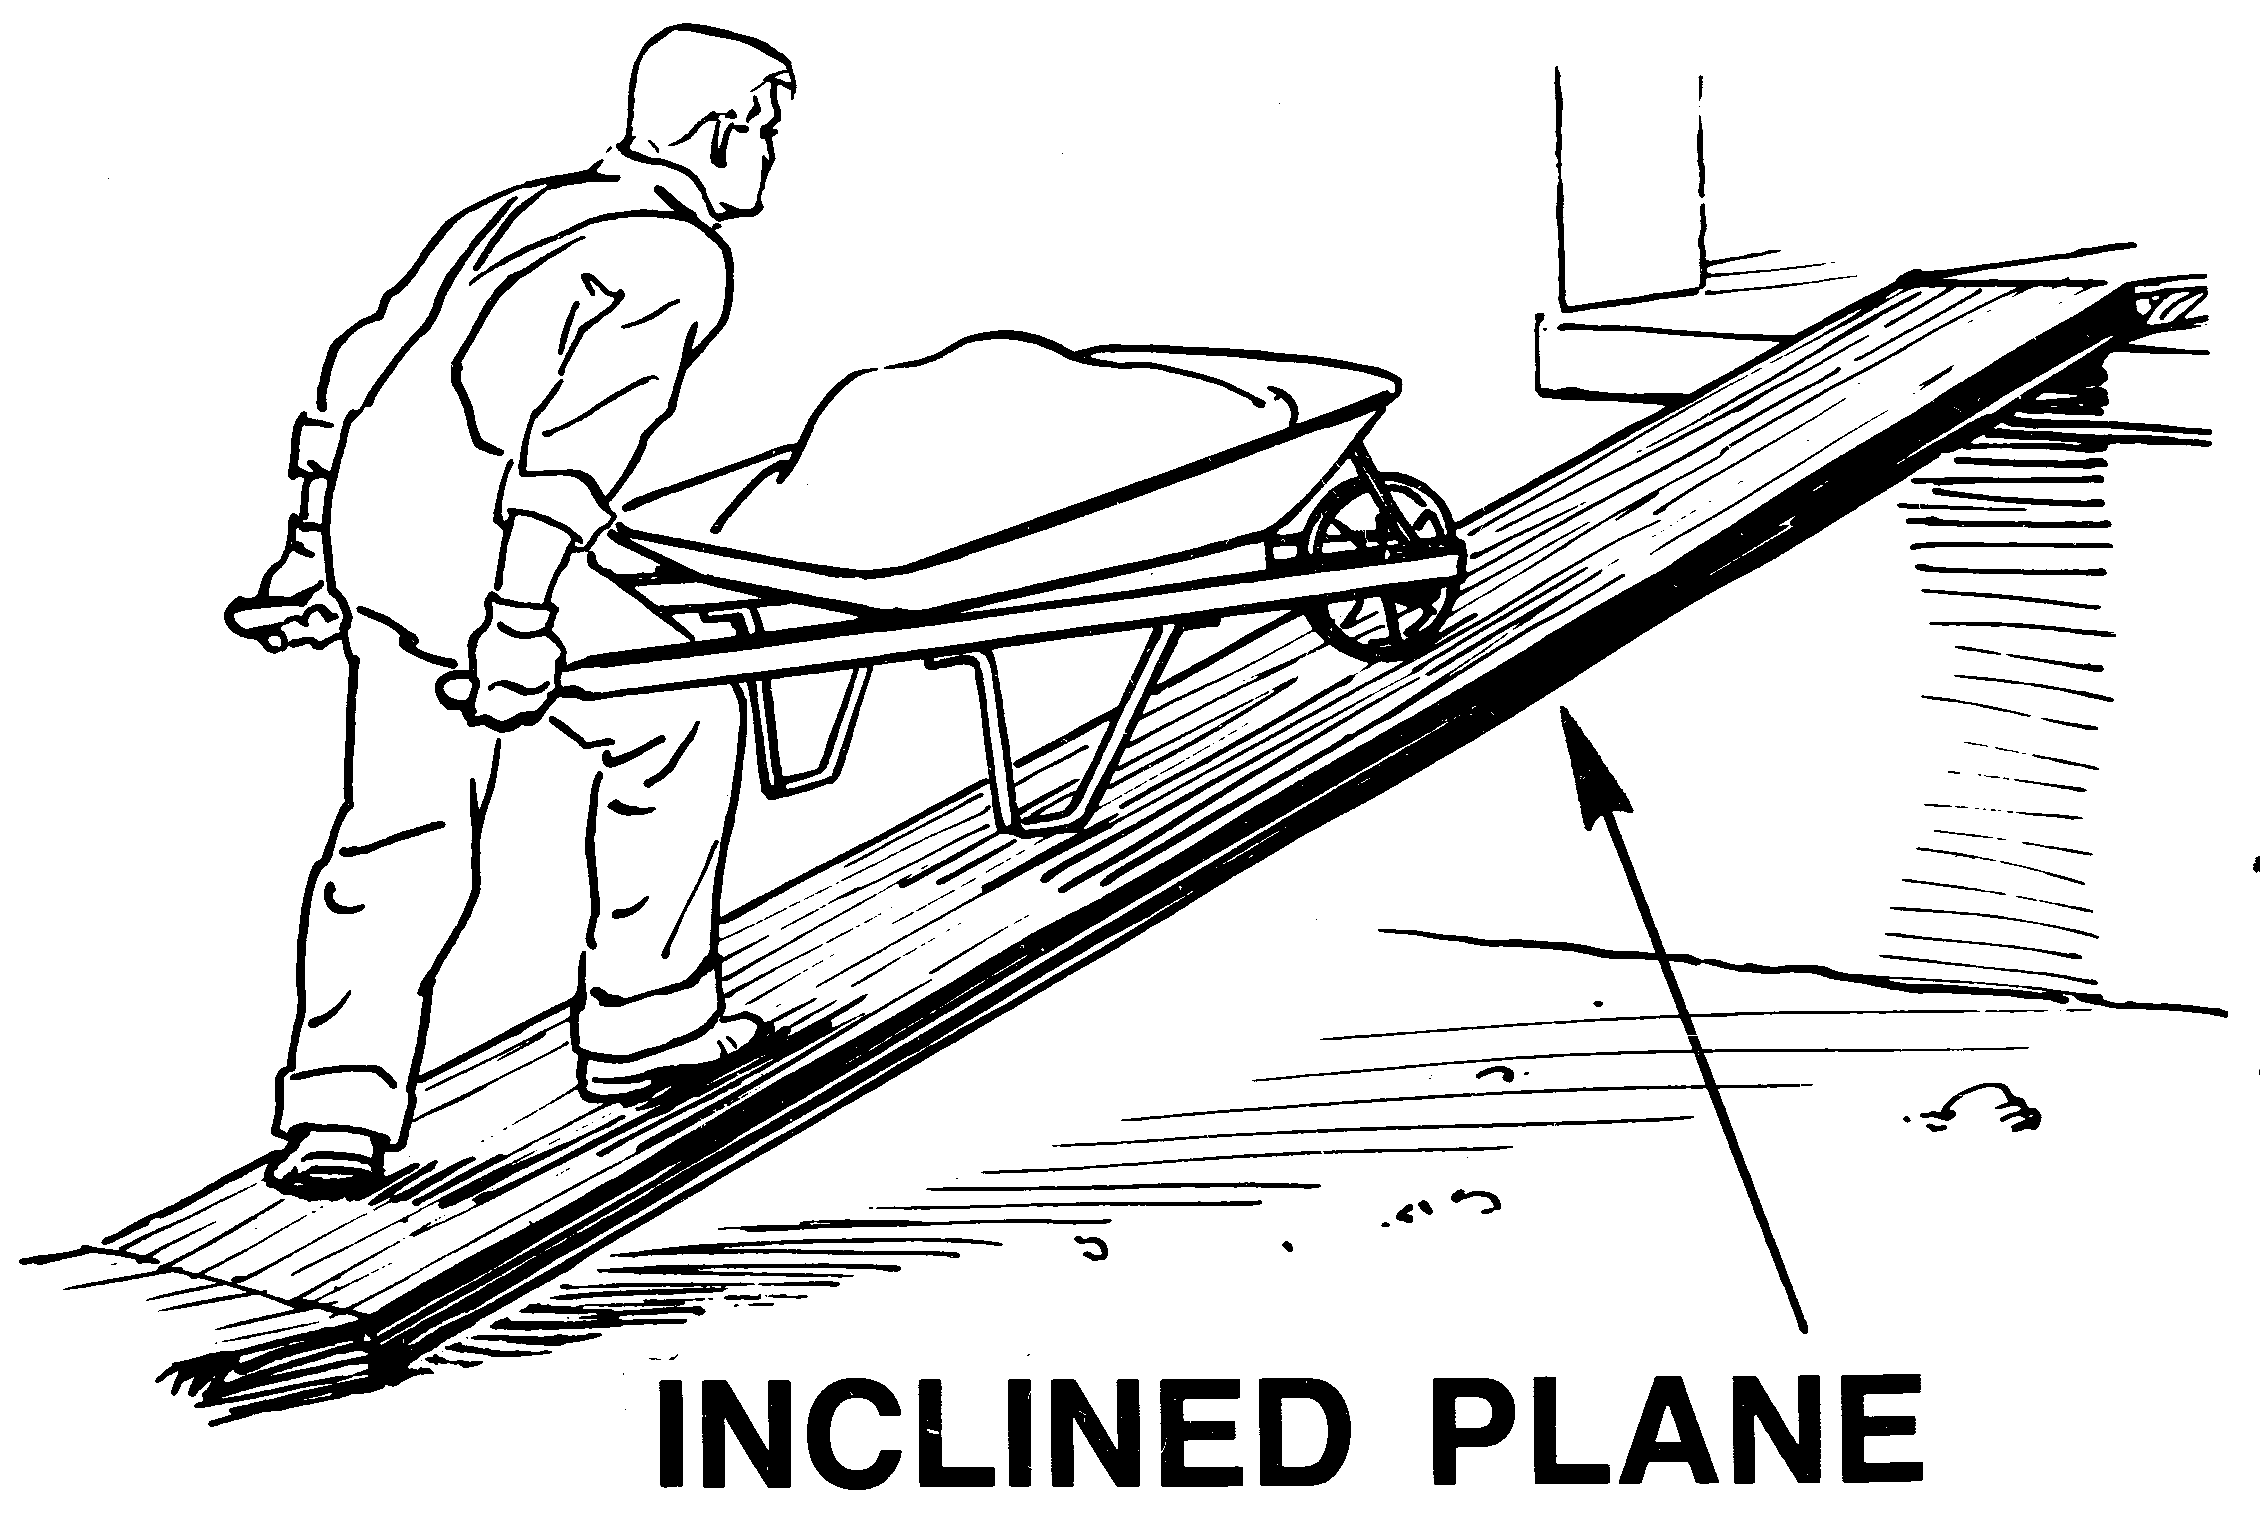 Inclined plane examples clipart.